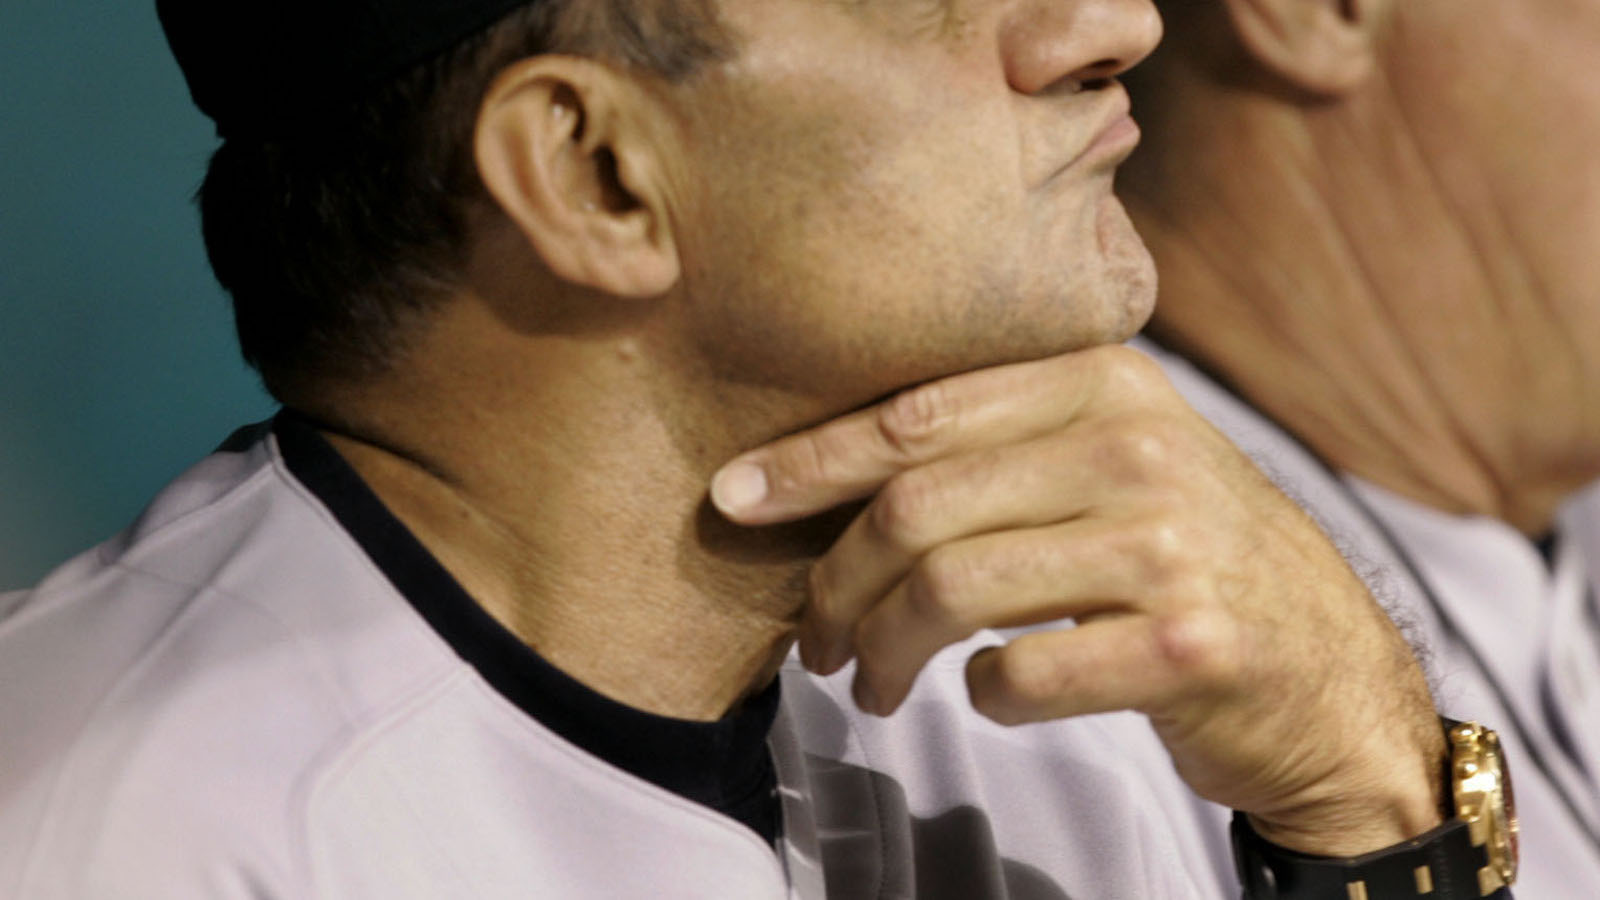 New York Yankees manager Joe Torre, left, rubs his chin while pitching coach Mel Stottlemyre yawns during the third inning of their game against the Tampa Bay Devil Rays Thursday night May 5, 2005, in St. Petersburg, Fla.  (AP Photo/Chris O'Meara)